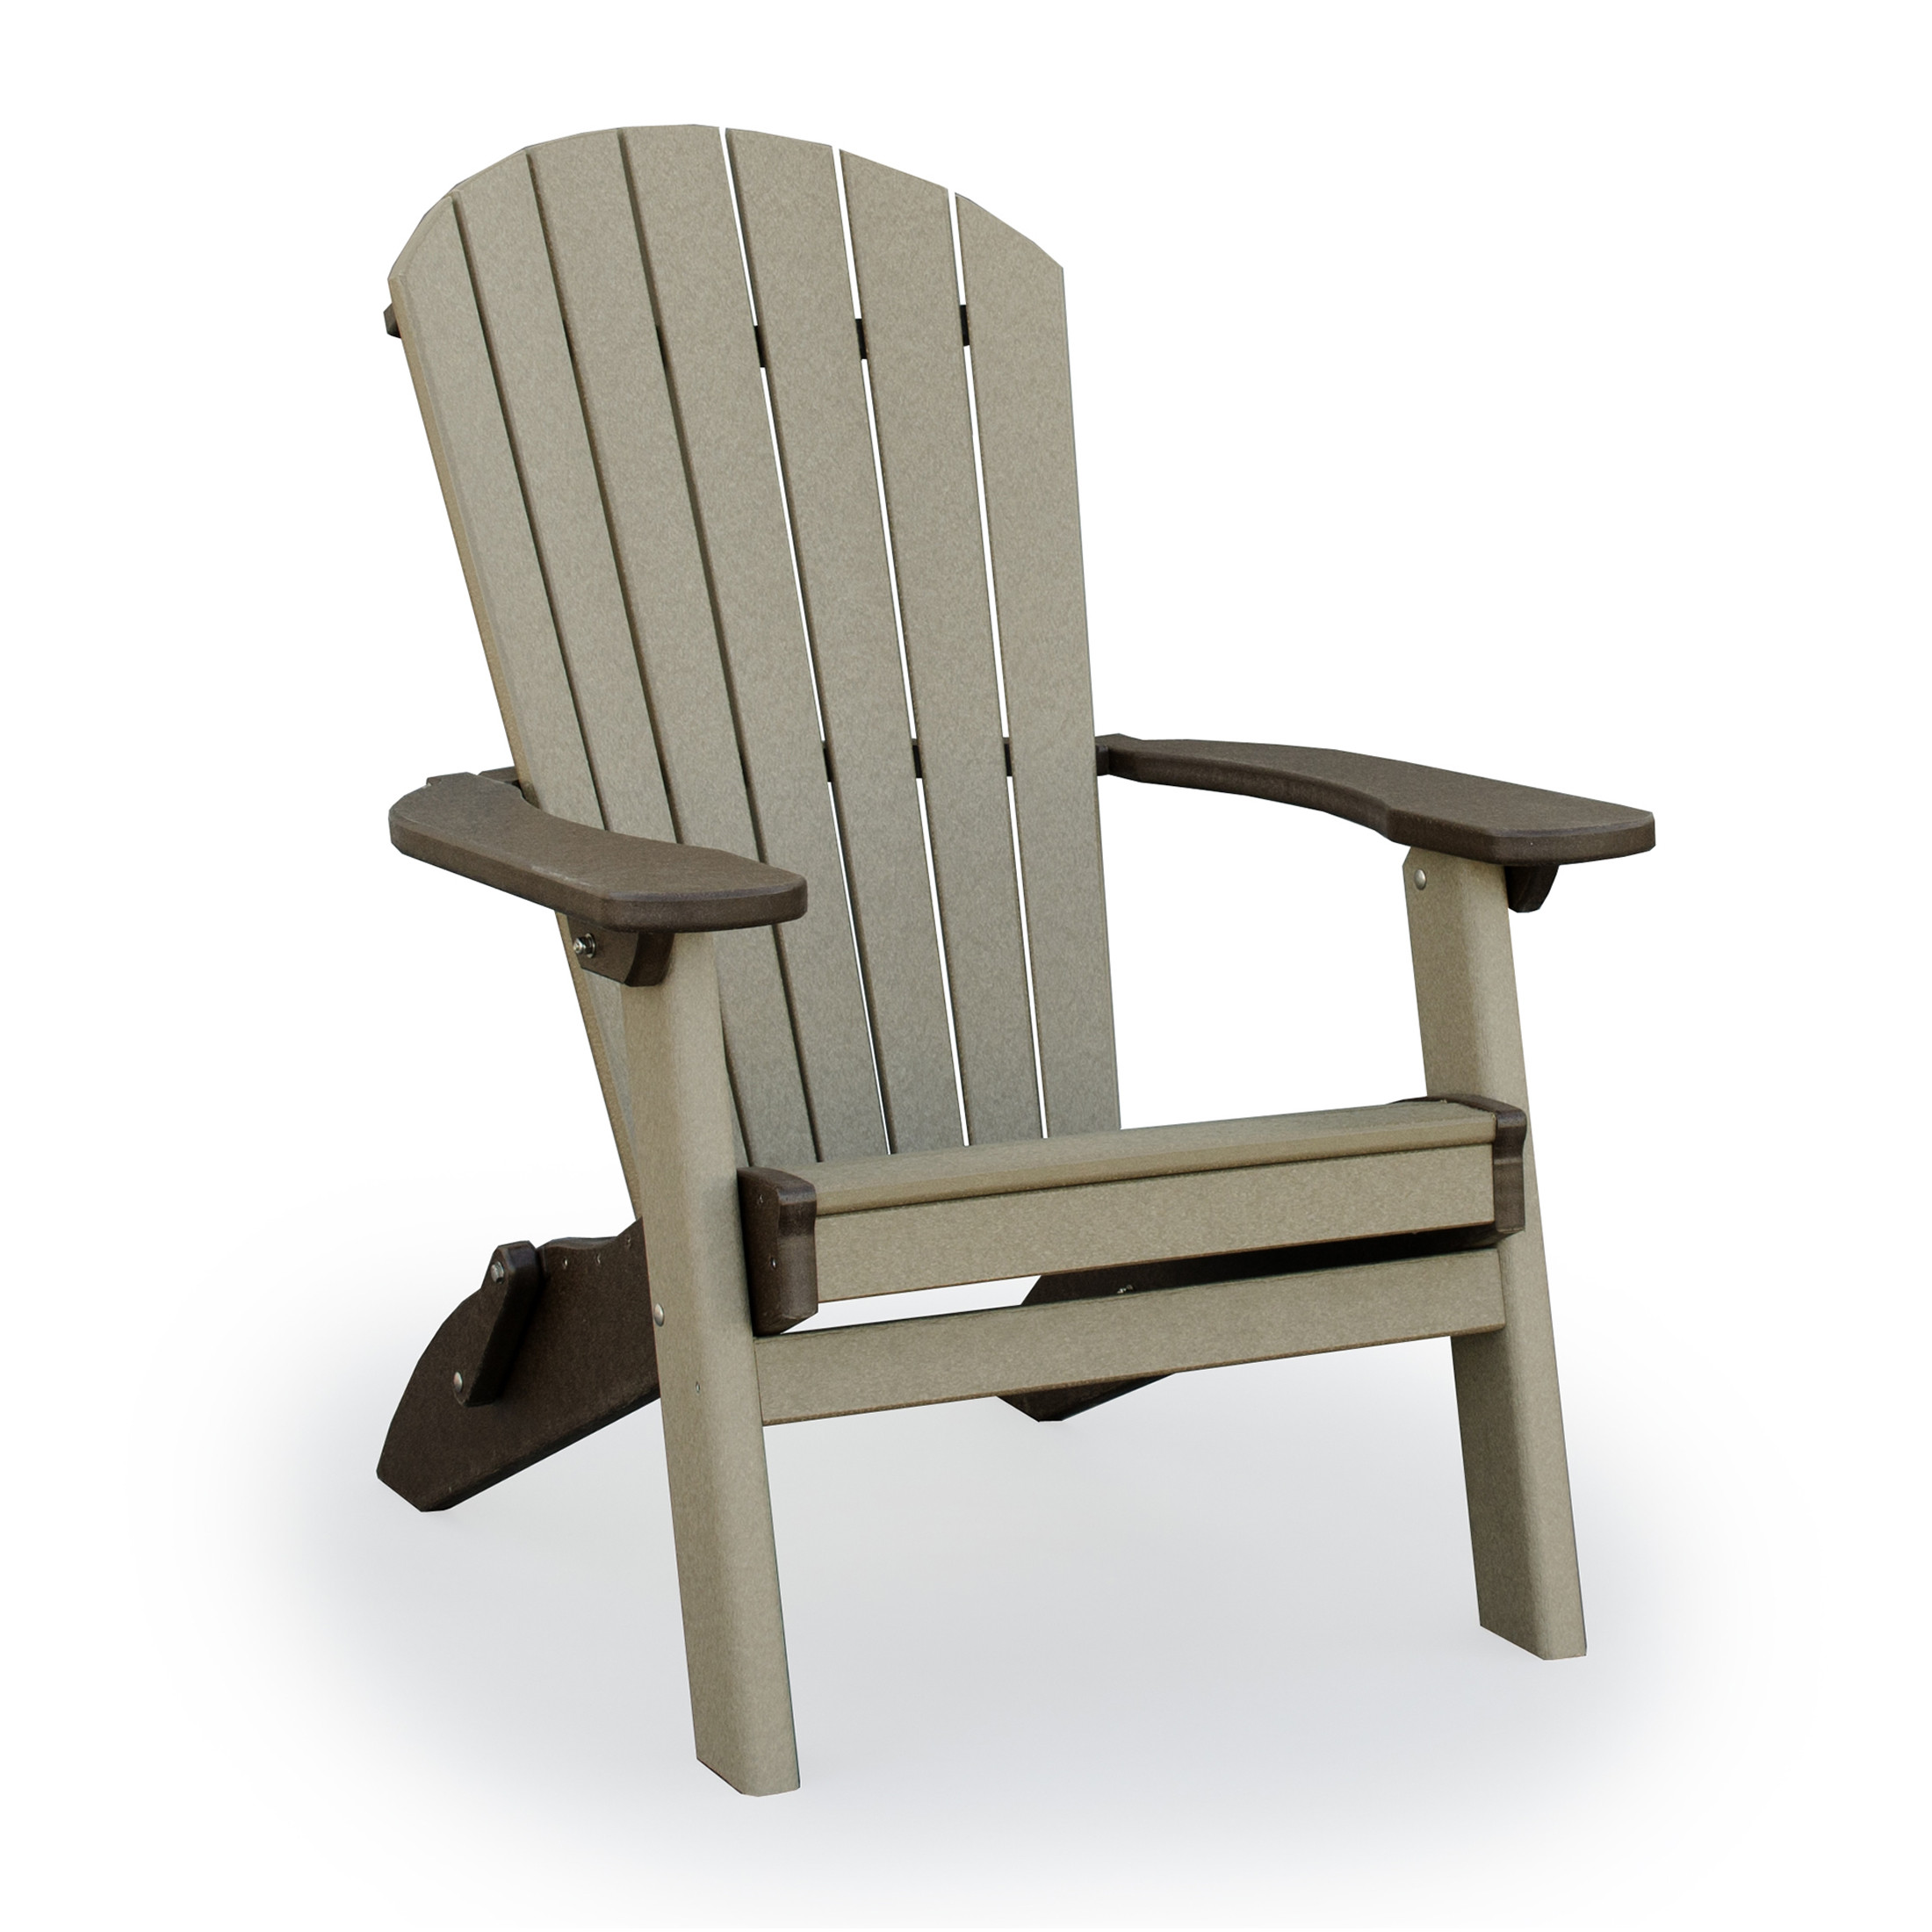 adirondack chairs amish breakfast nook poly wood seaaira folding chair finch